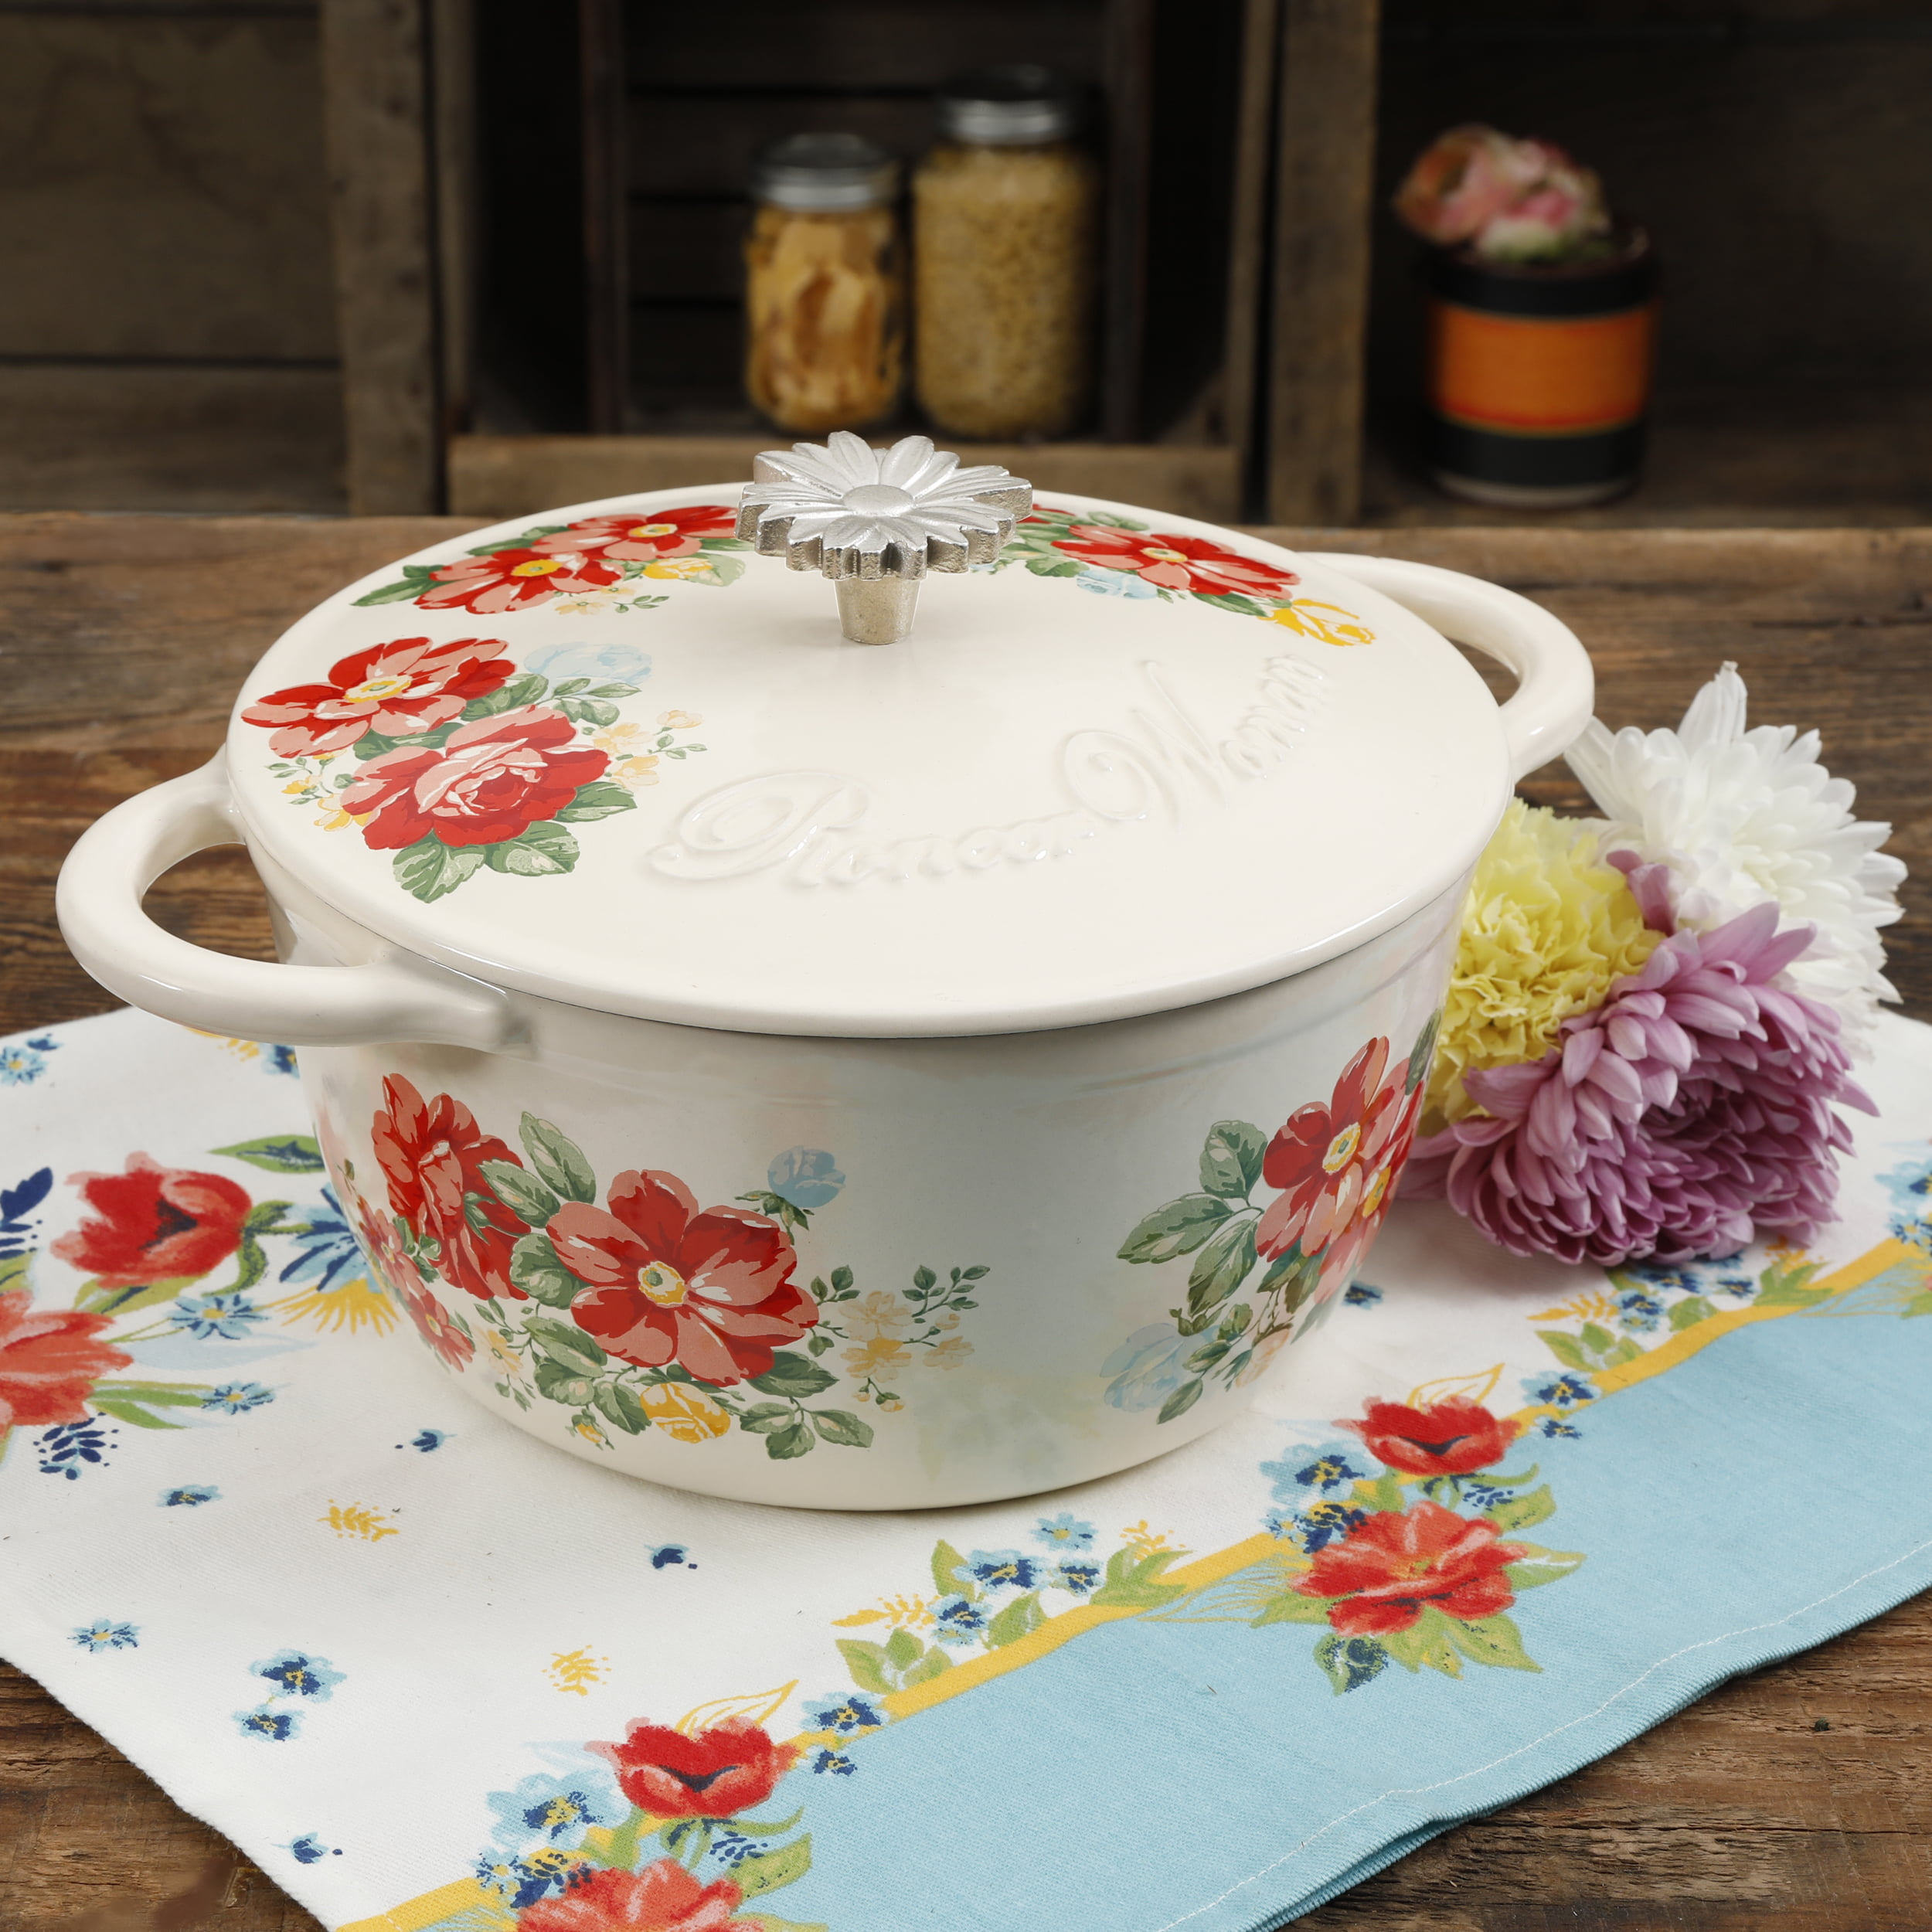 The Pioneer Woman Timeless Beauty Vintage Floral 3-Quart Enameled Cast Iron Casserole w Lid by Gibson Overseas Inc.